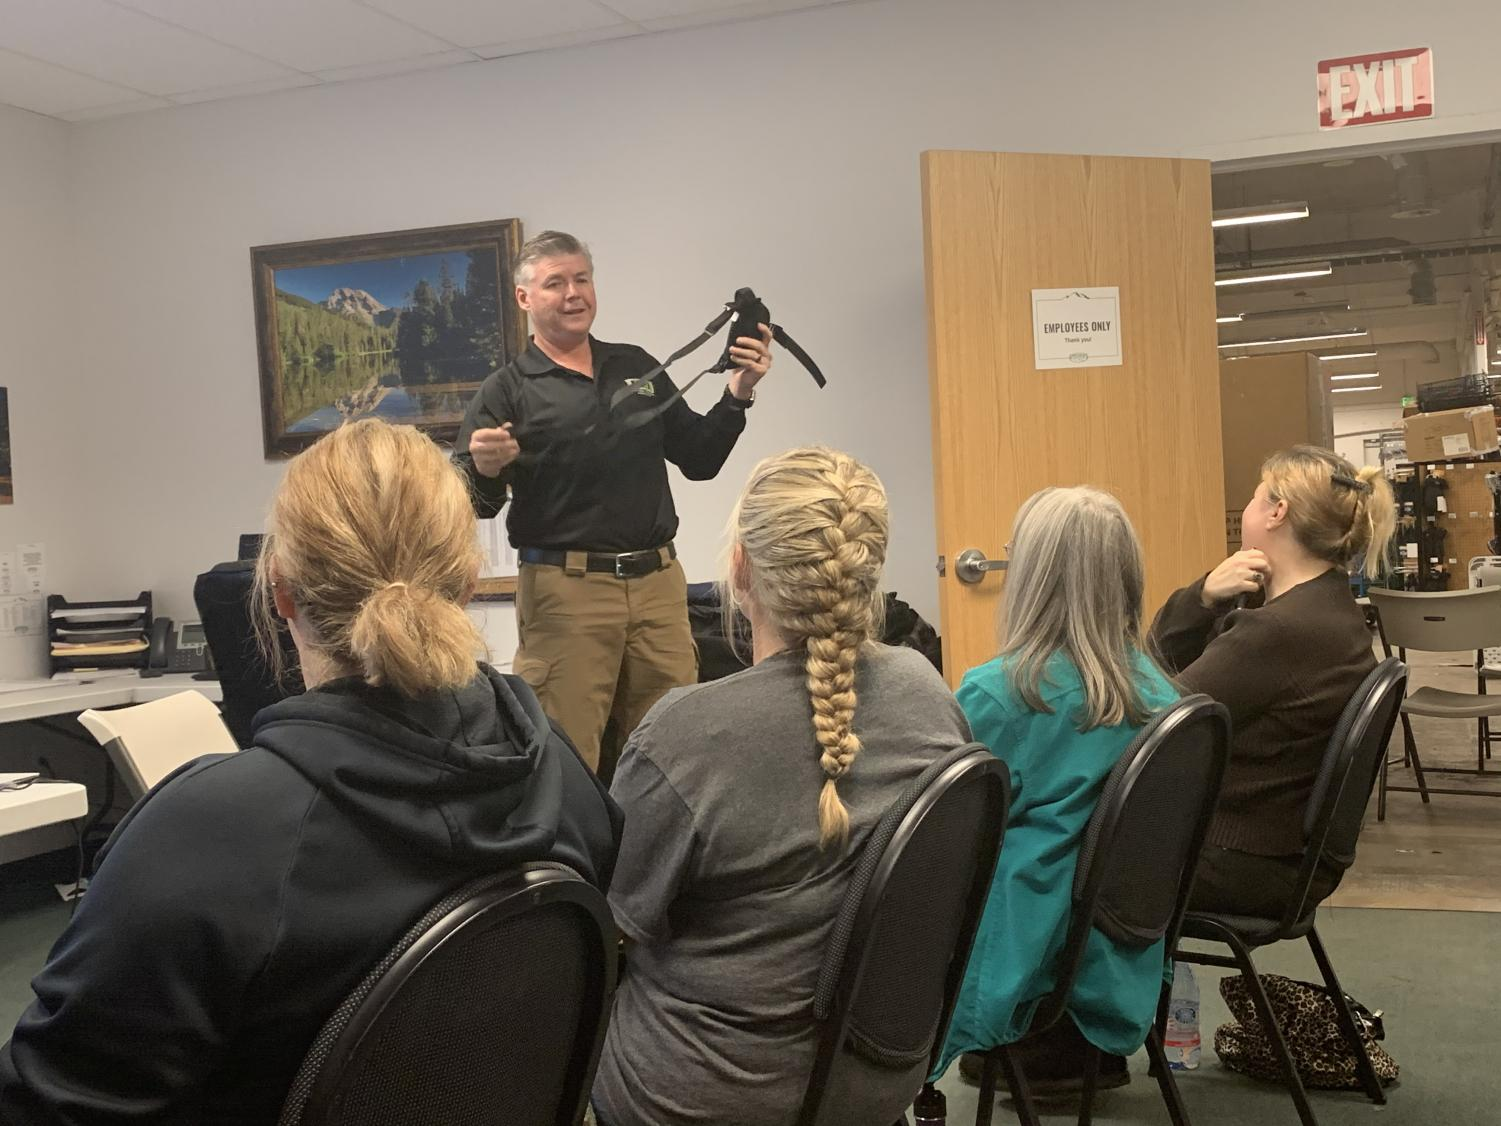 Ted Lidie showing his students what a shoulder halter looks like. Photo credit: Angelina Mendez